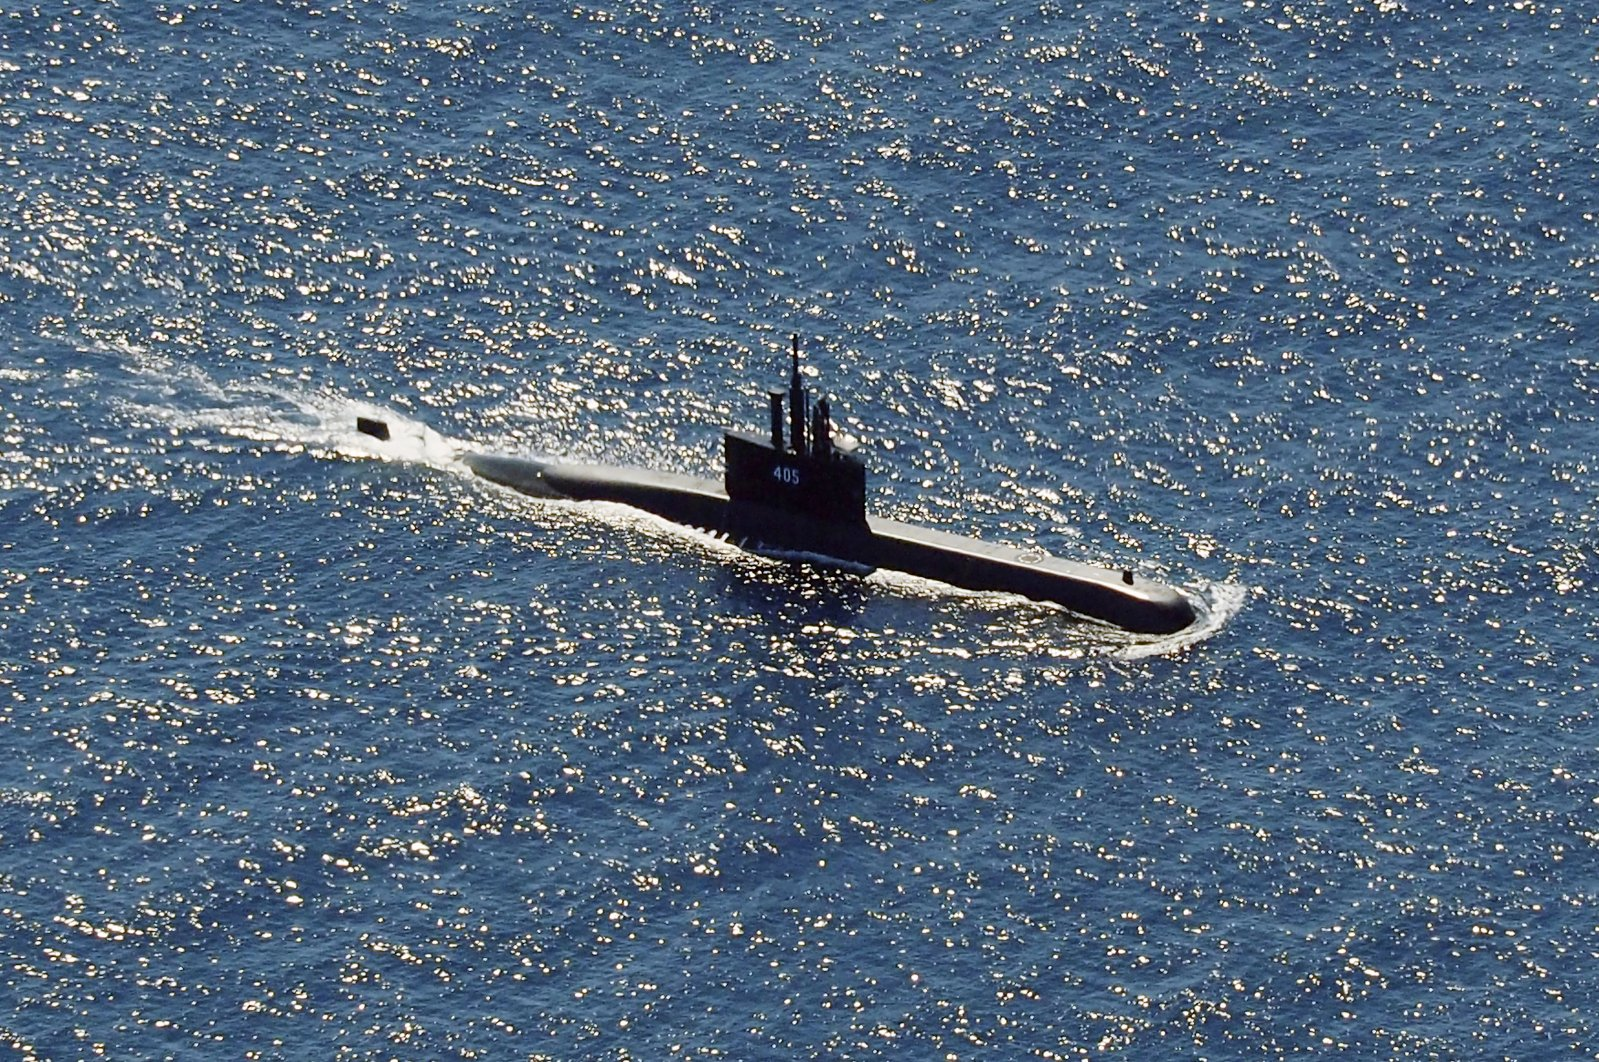 The Indonesian Navy submarine KRI Alugoro sails during a search for KRI Nanggala, another submarine that went missing while participating in a training exercise on Wednesday, in the waters off Bali Island, Indonesia, April 22, 2021. (AP Photo)